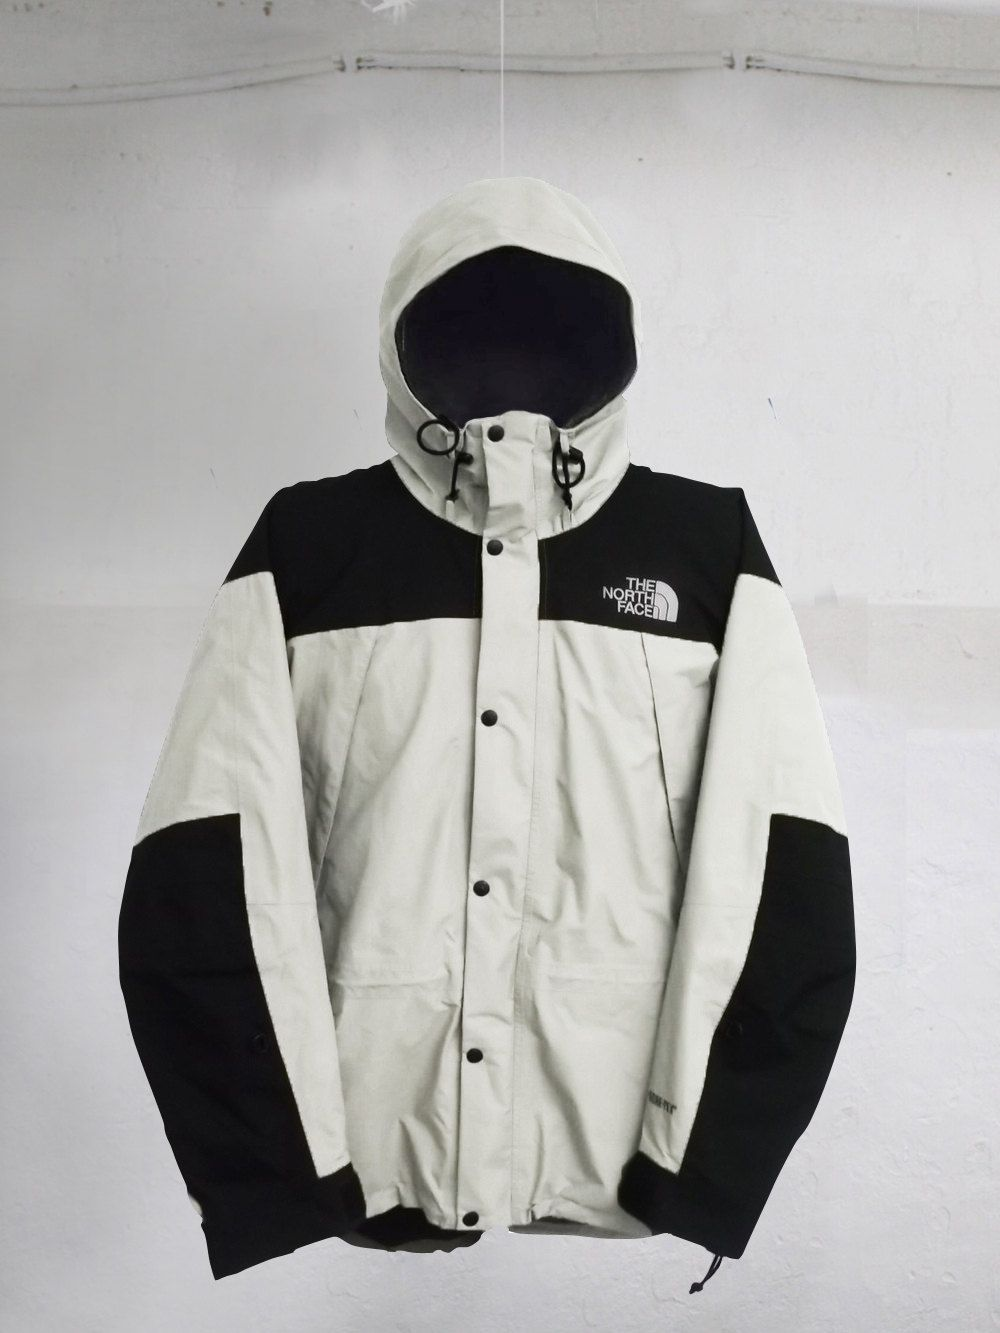 5d7f668916d4 Vintage 90s The North Face Mountain Guide Gore-Tex jacket White Black Size  S by VapeoVintage on Etsy